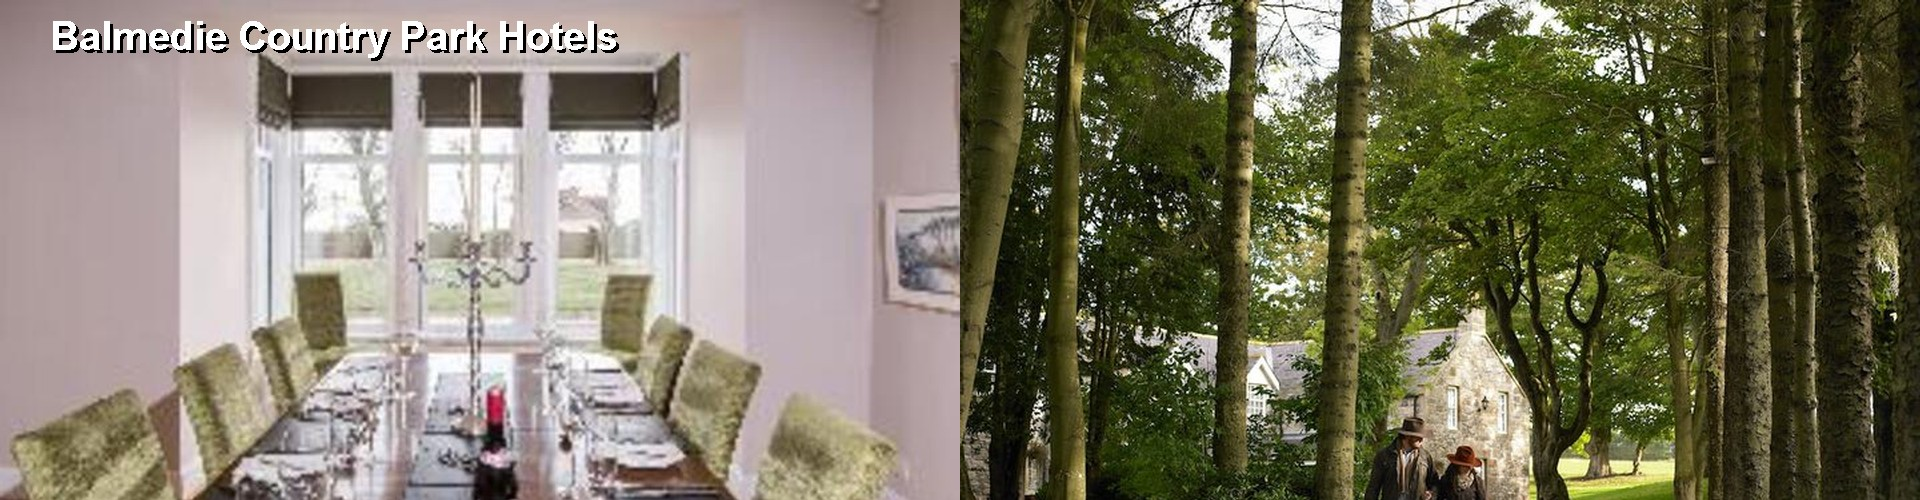 5 Best Hotels near Balmedie Country Park